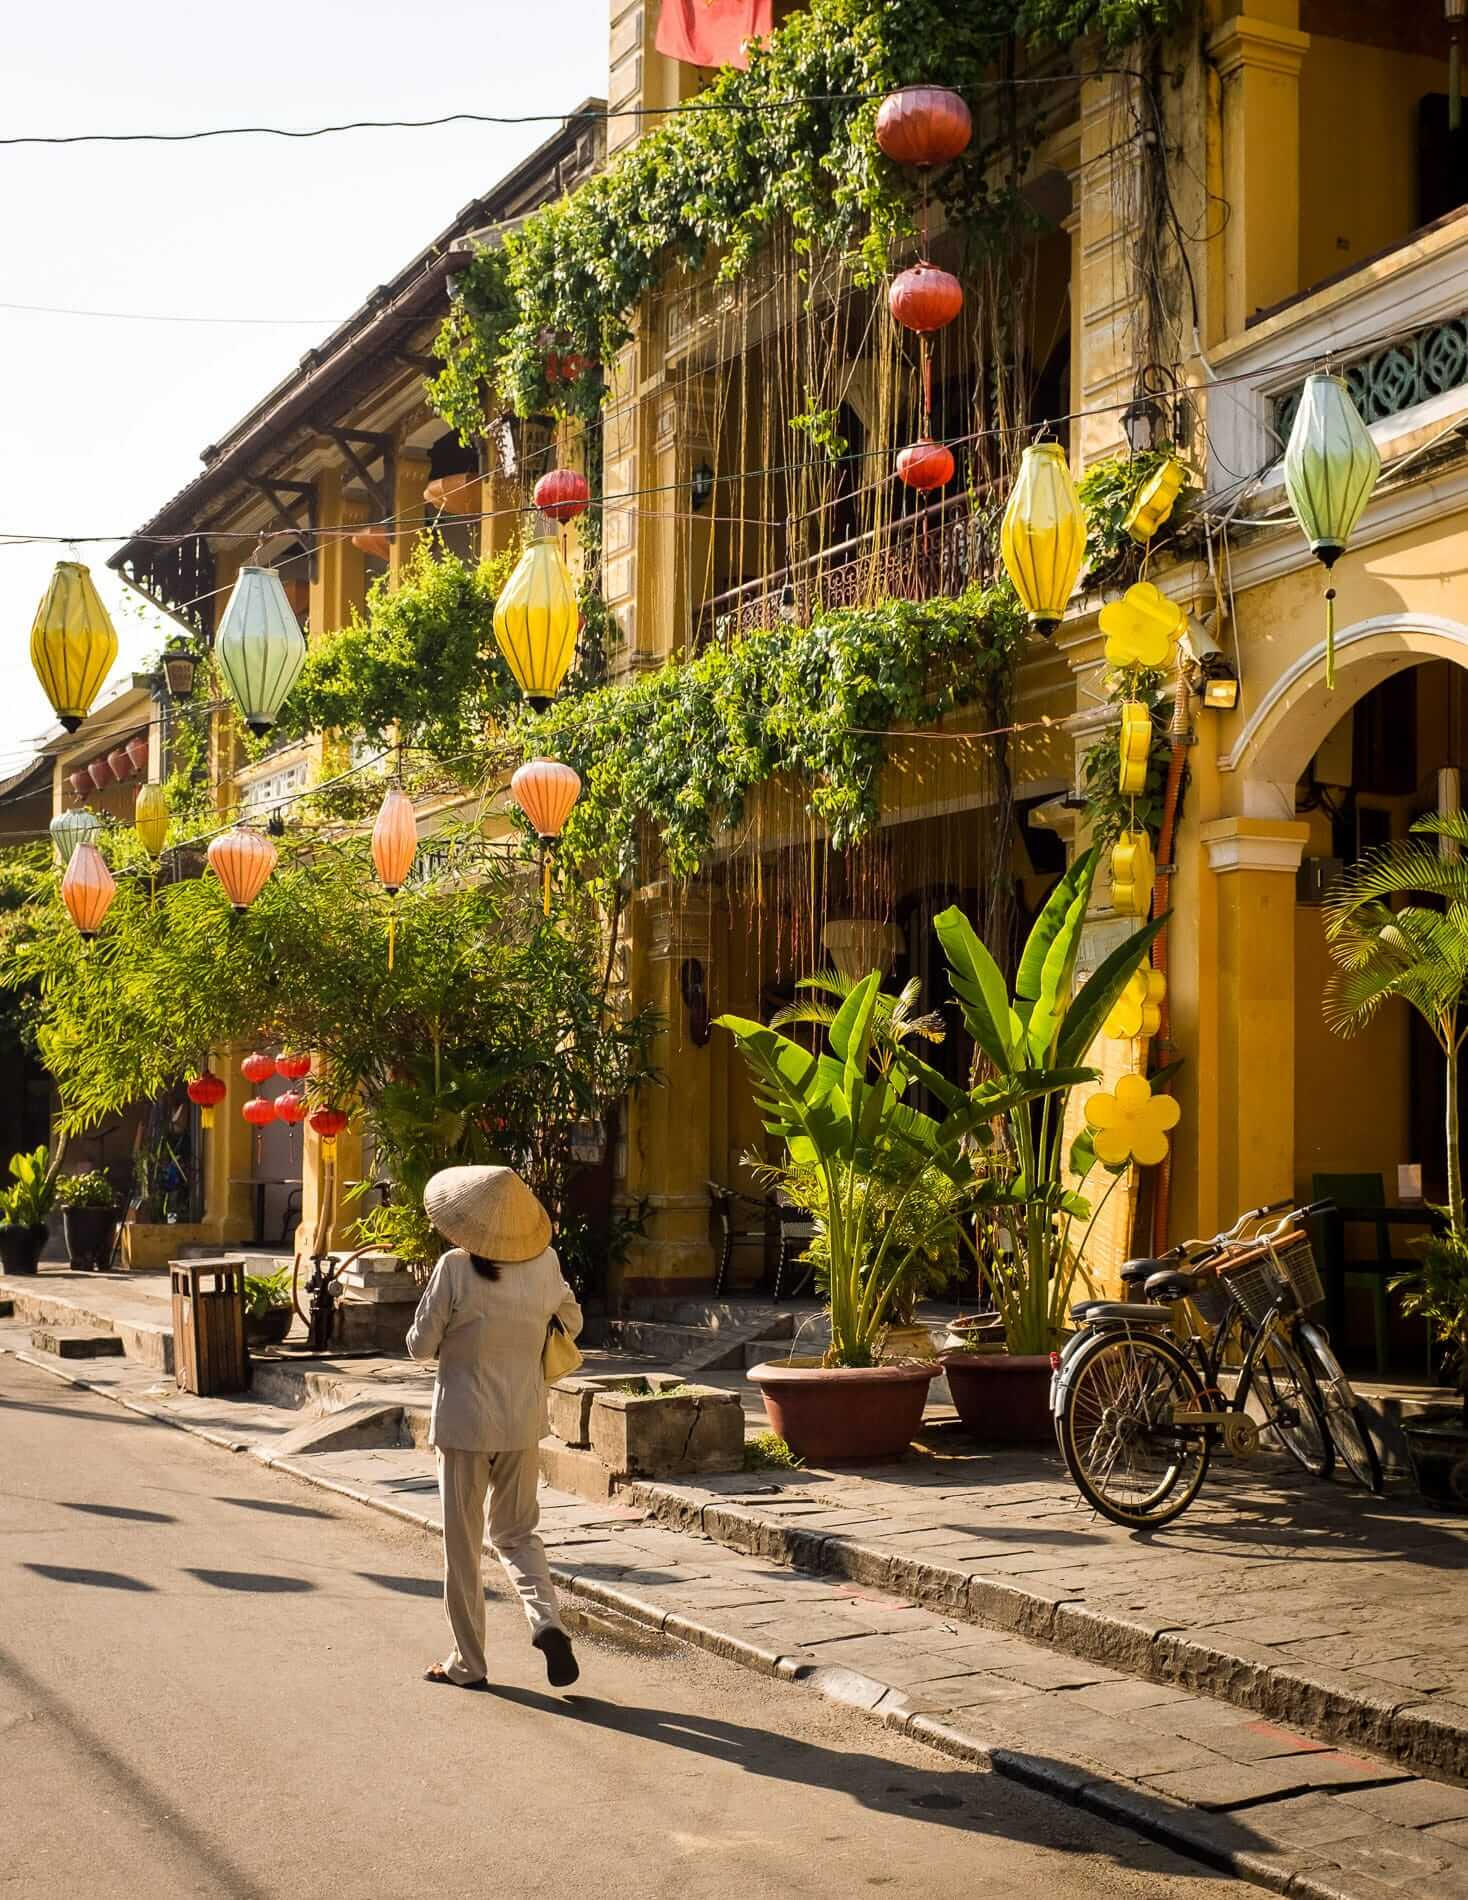 Walking through the picturesque streets of Hoi An Ancient Town